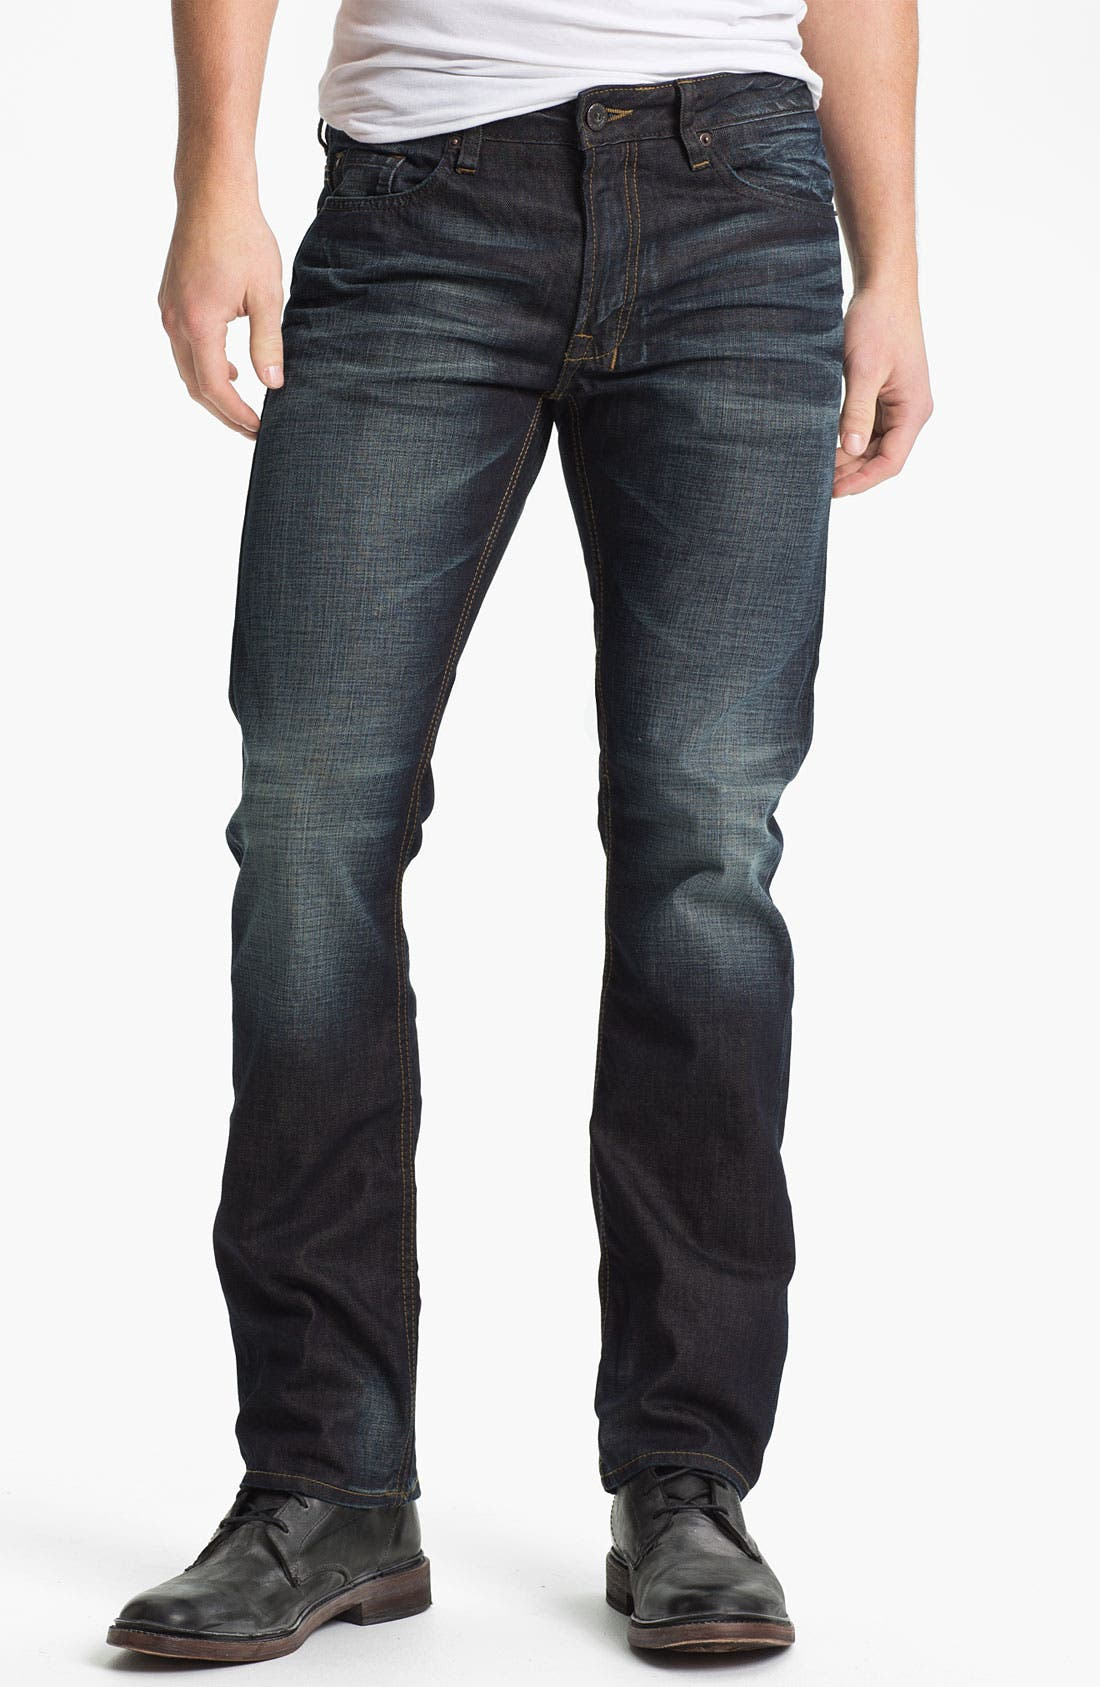 Alternate Image 1 Selected - Buffalo Jeans 'Six' Slim Straight Leg Jeans (Veined/Dirty) (Online Exclusive)